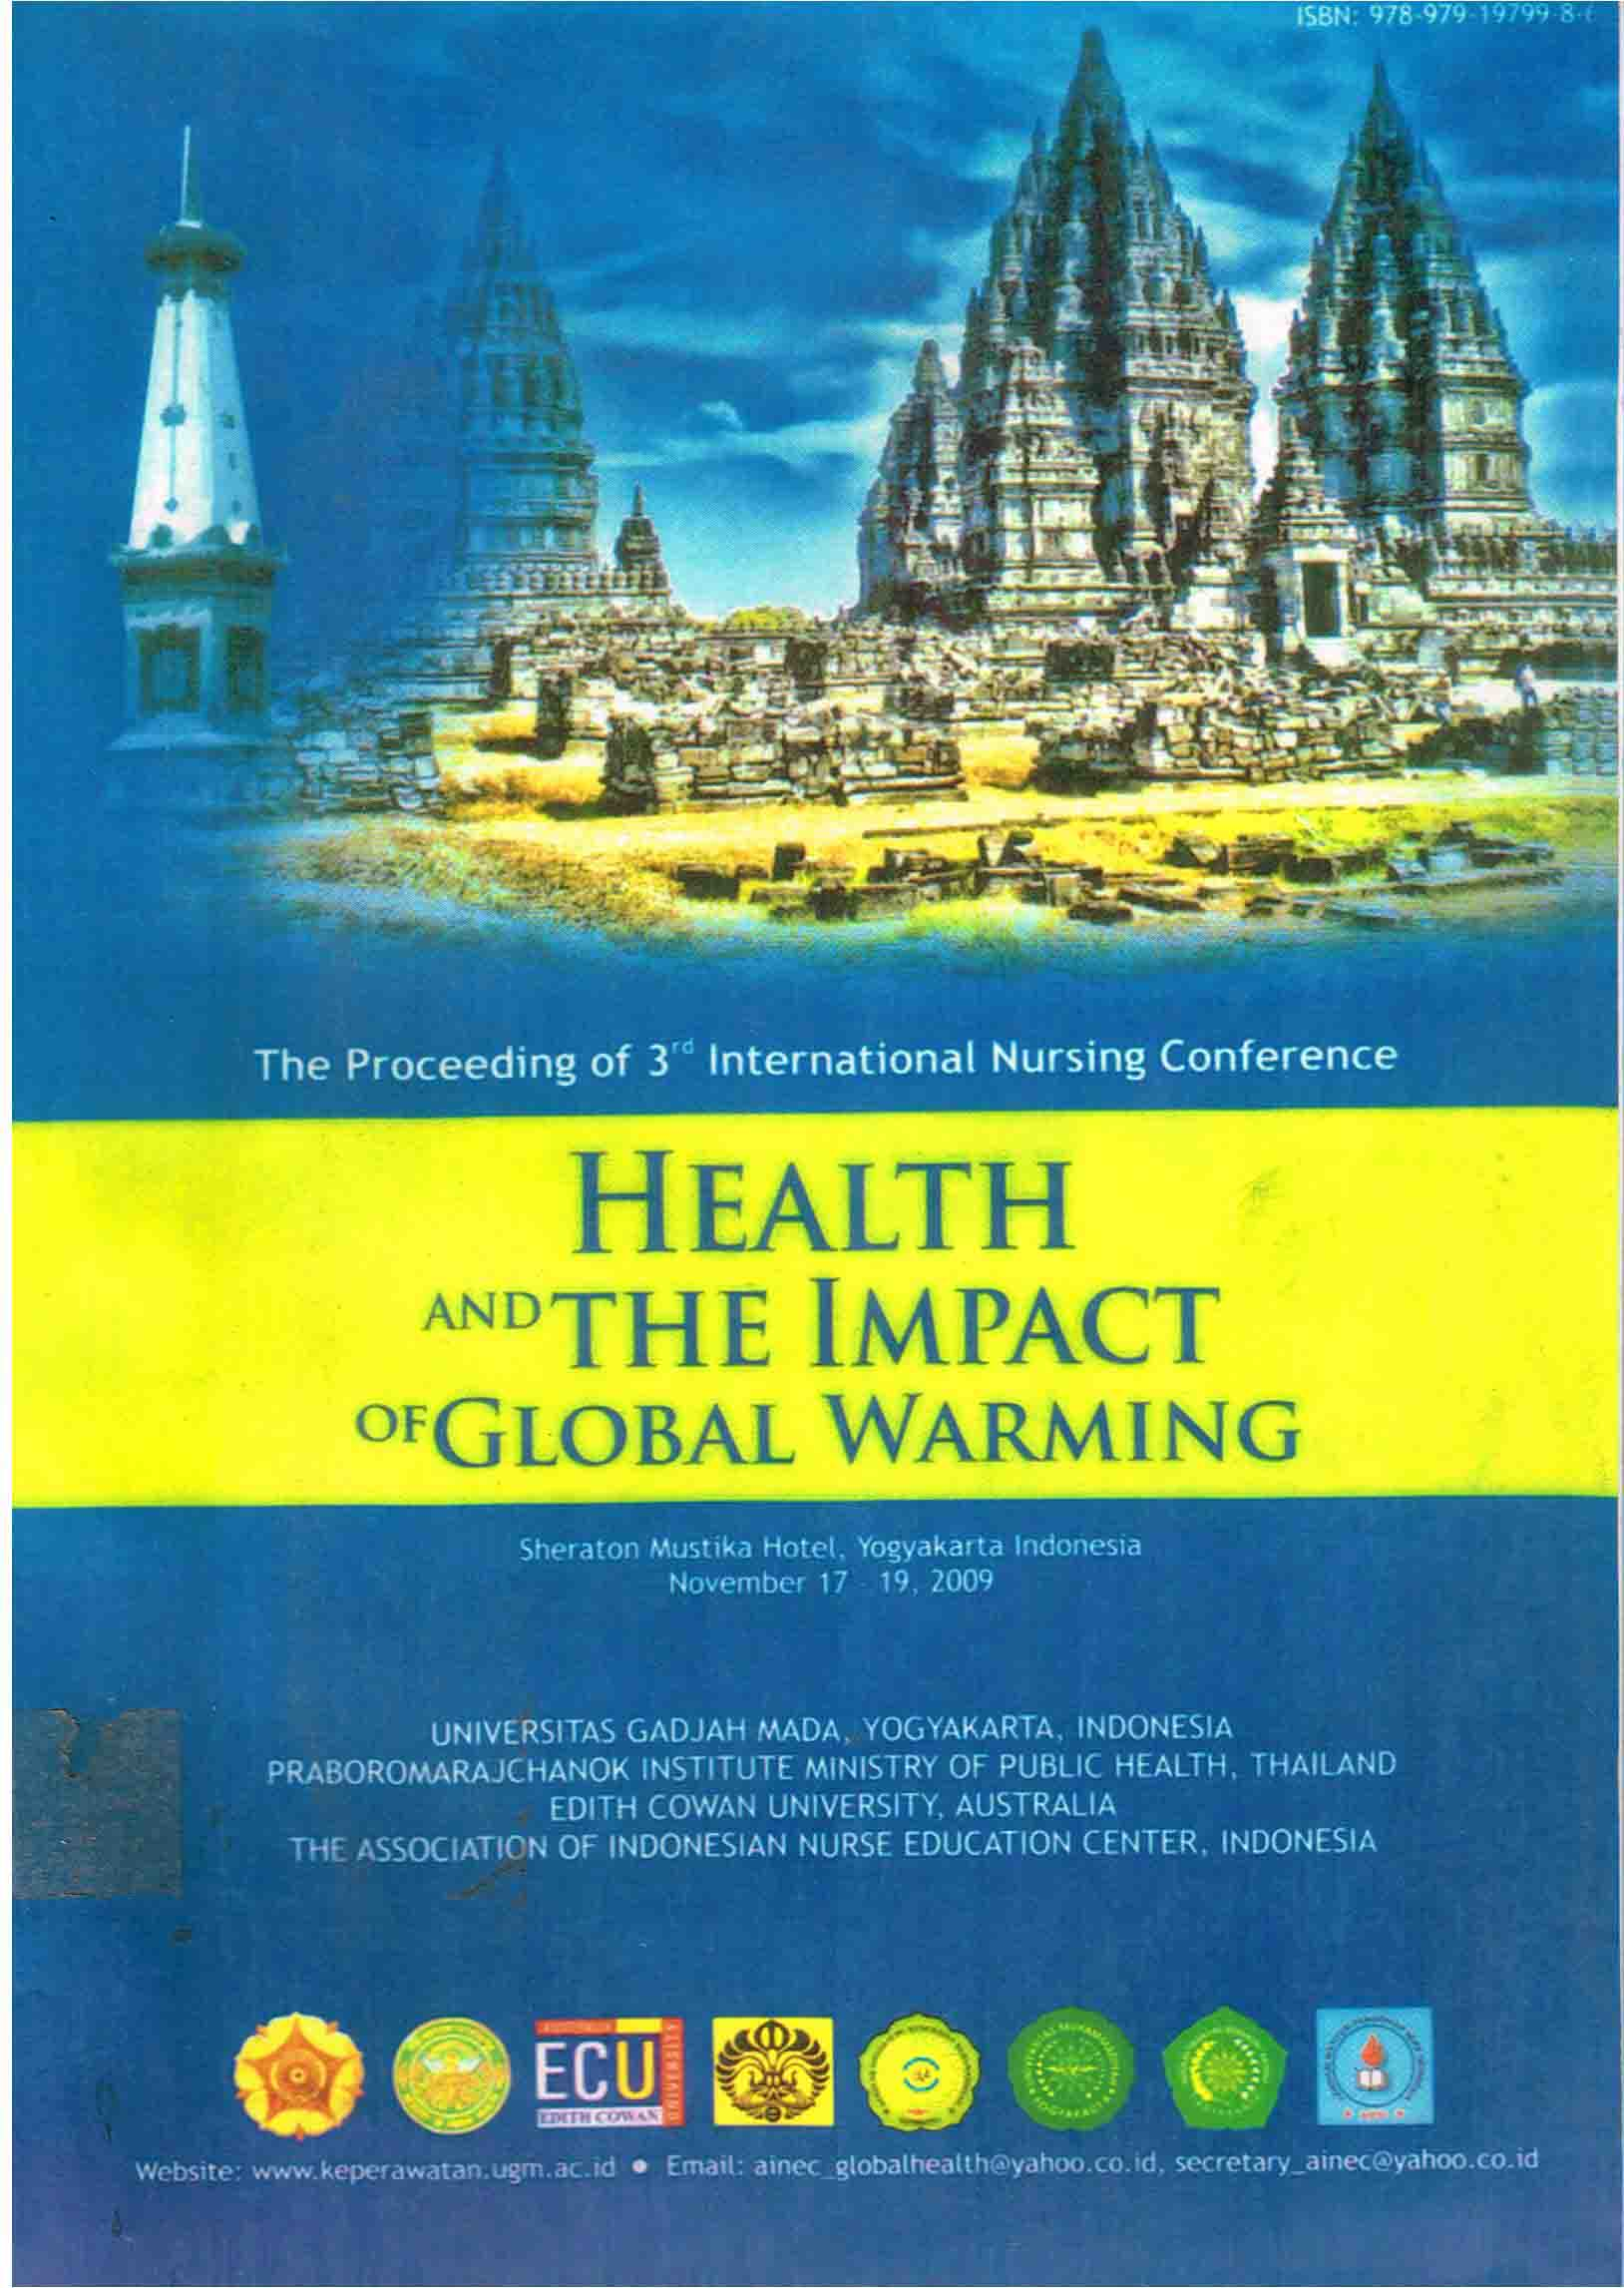 HEALTH AND THE IMPACT OF GLOBAL WARMING : The Proceeding of 3rd International Nursing Conference